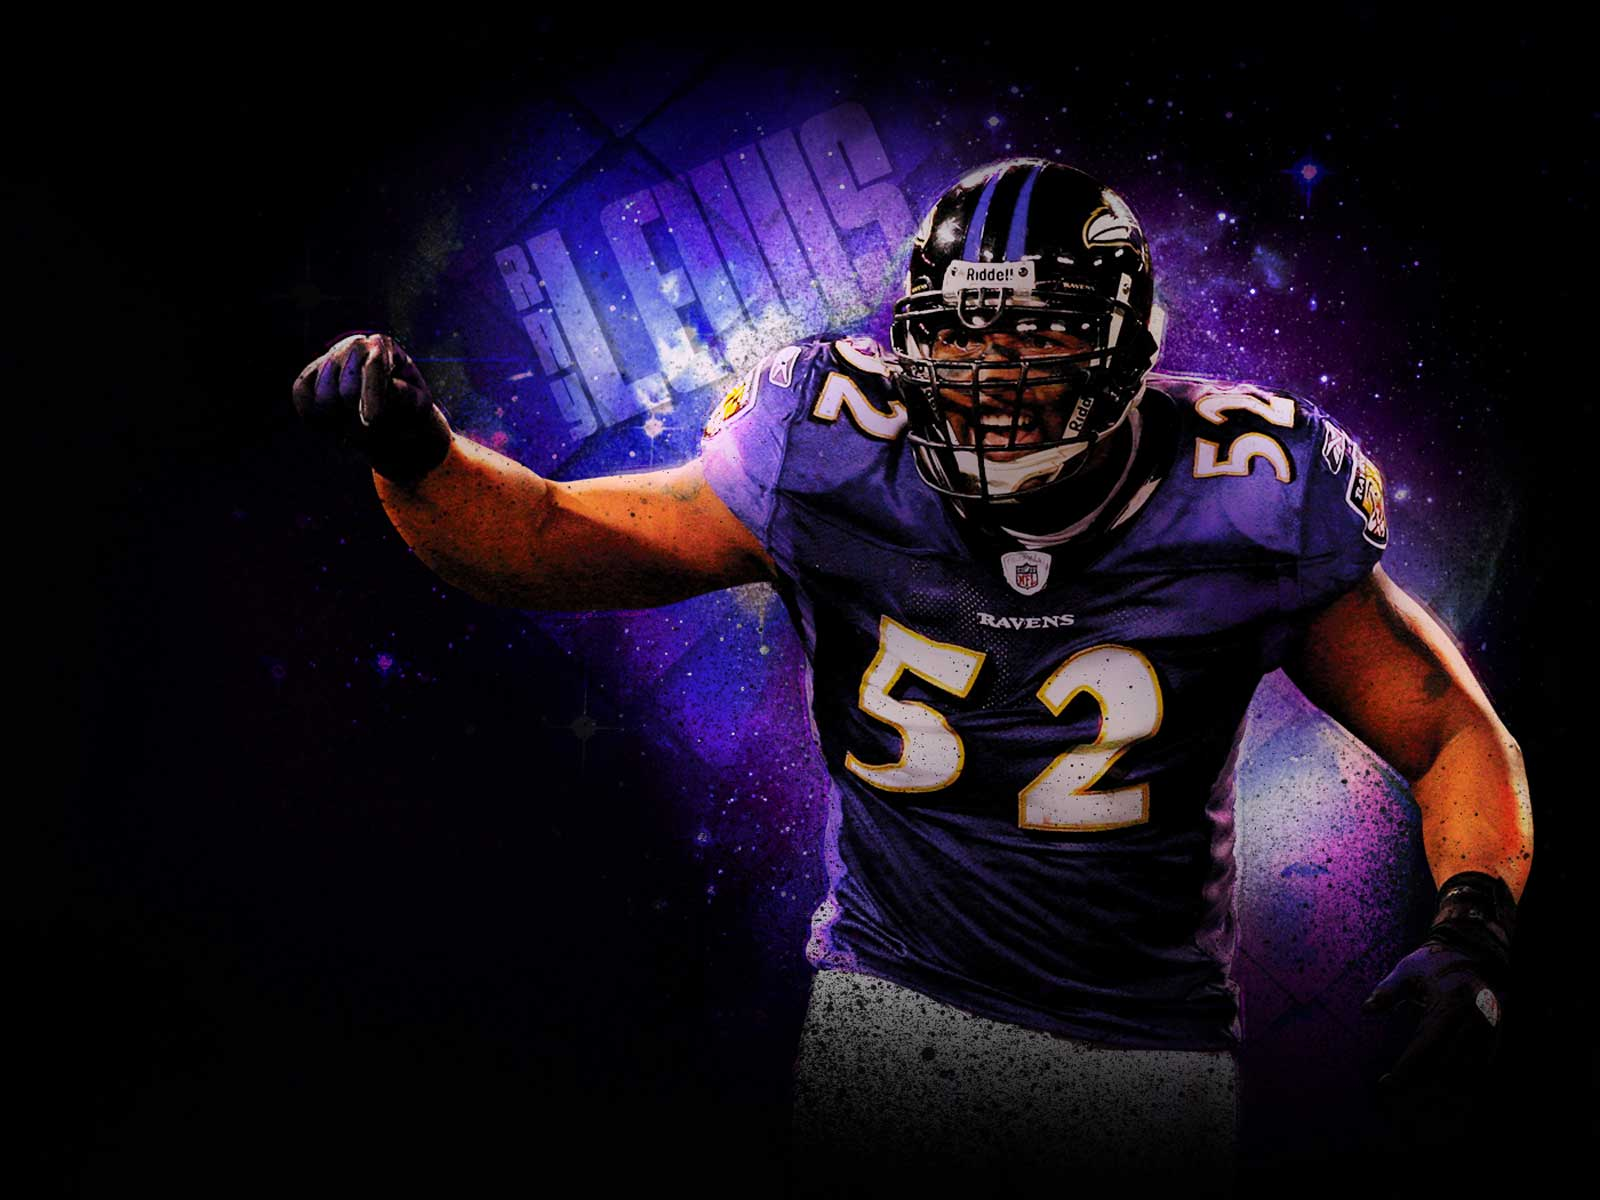 Baltimore Ravens HD wallpaper Baltimore Ravens wallpapers 1600x1200